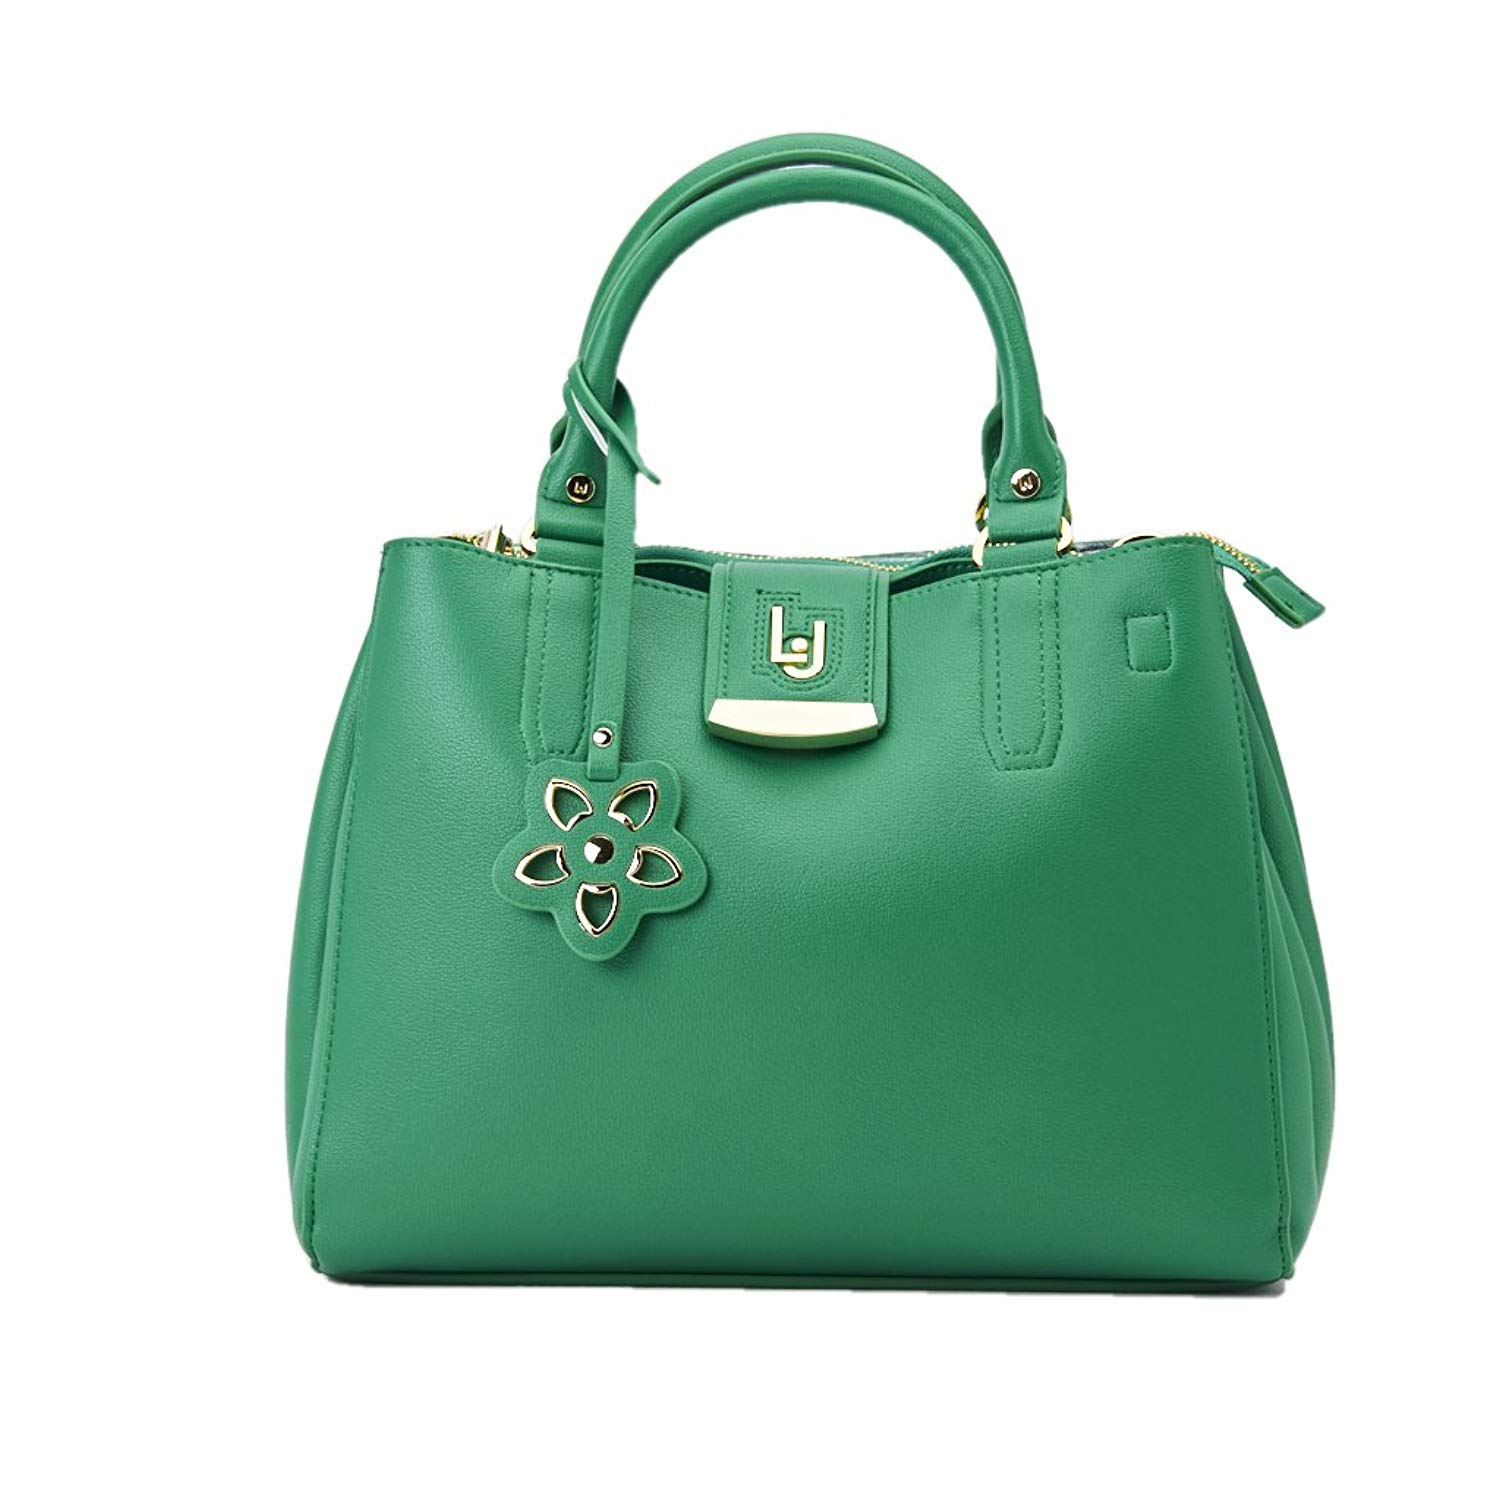 375da9fb90ab Get Quotations · Borsa Bauletto Liu Jo Phoenix Green N18017 E0040